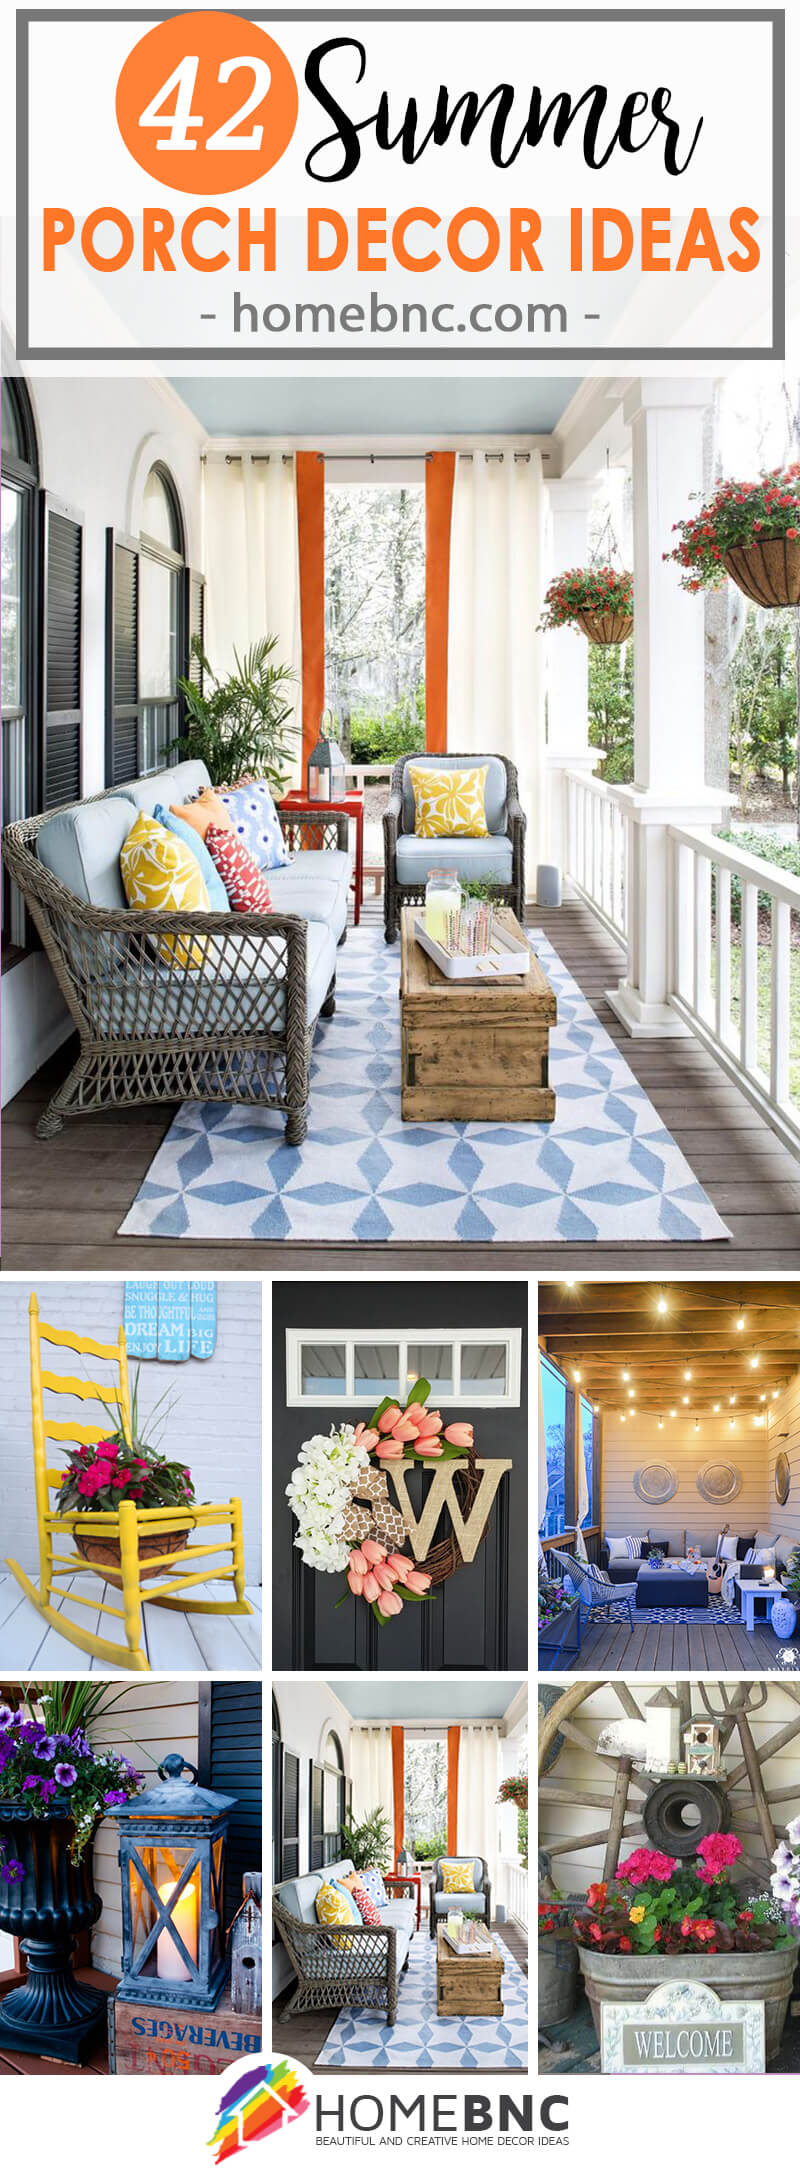 Summer Porch Decorations